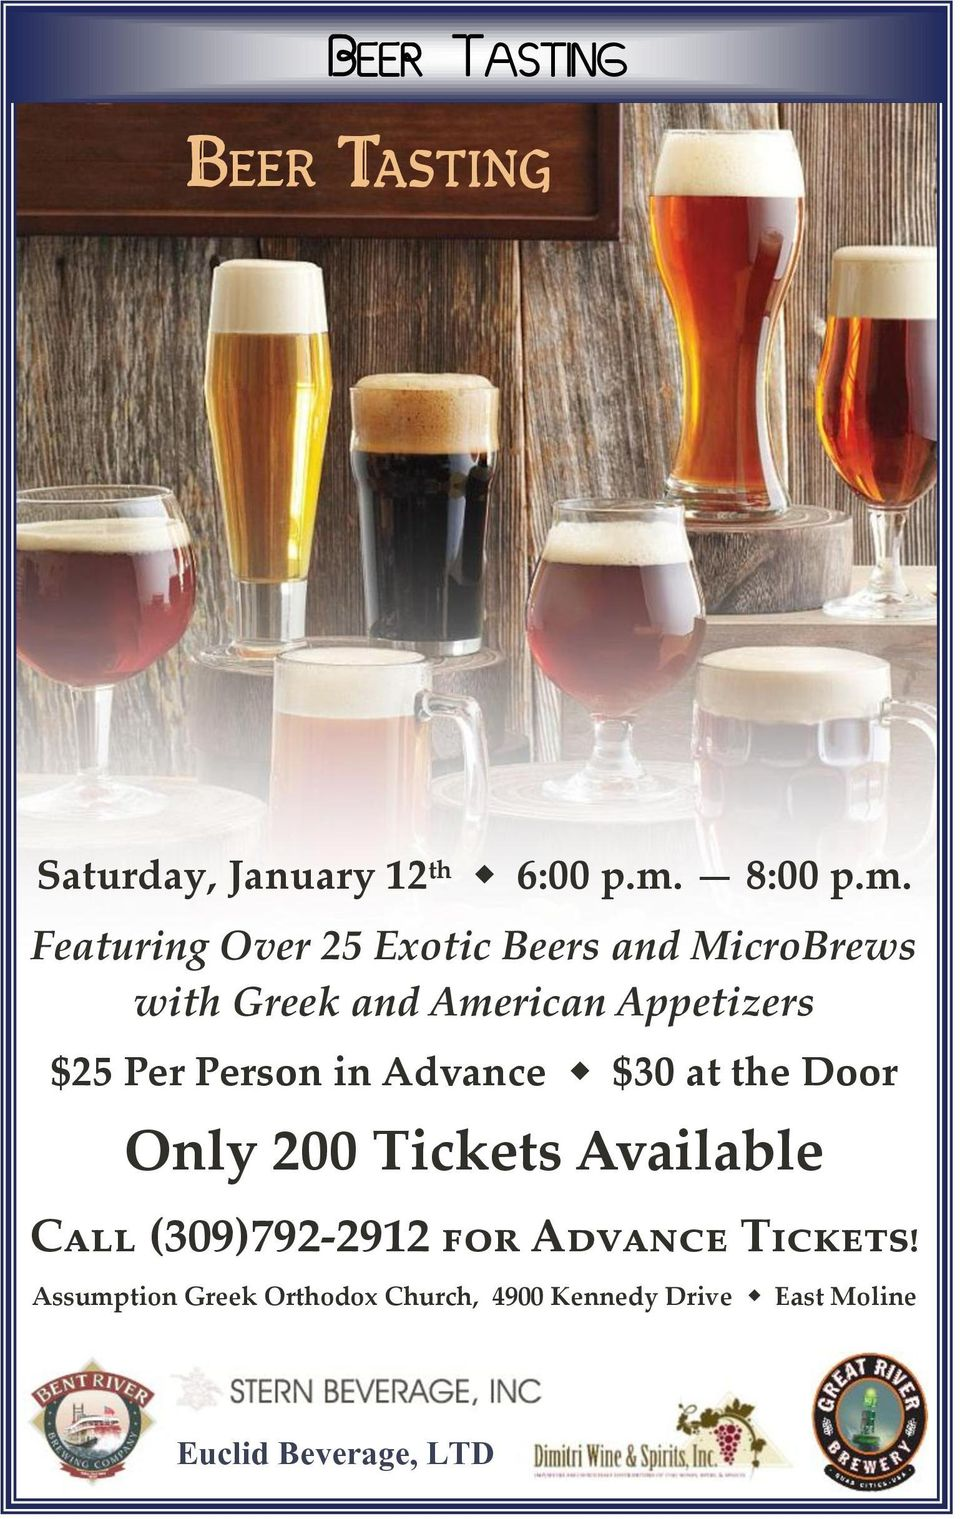 Featuring Over 25 Exotic Beers and MicroBrews with Greek and American Appetizers $25